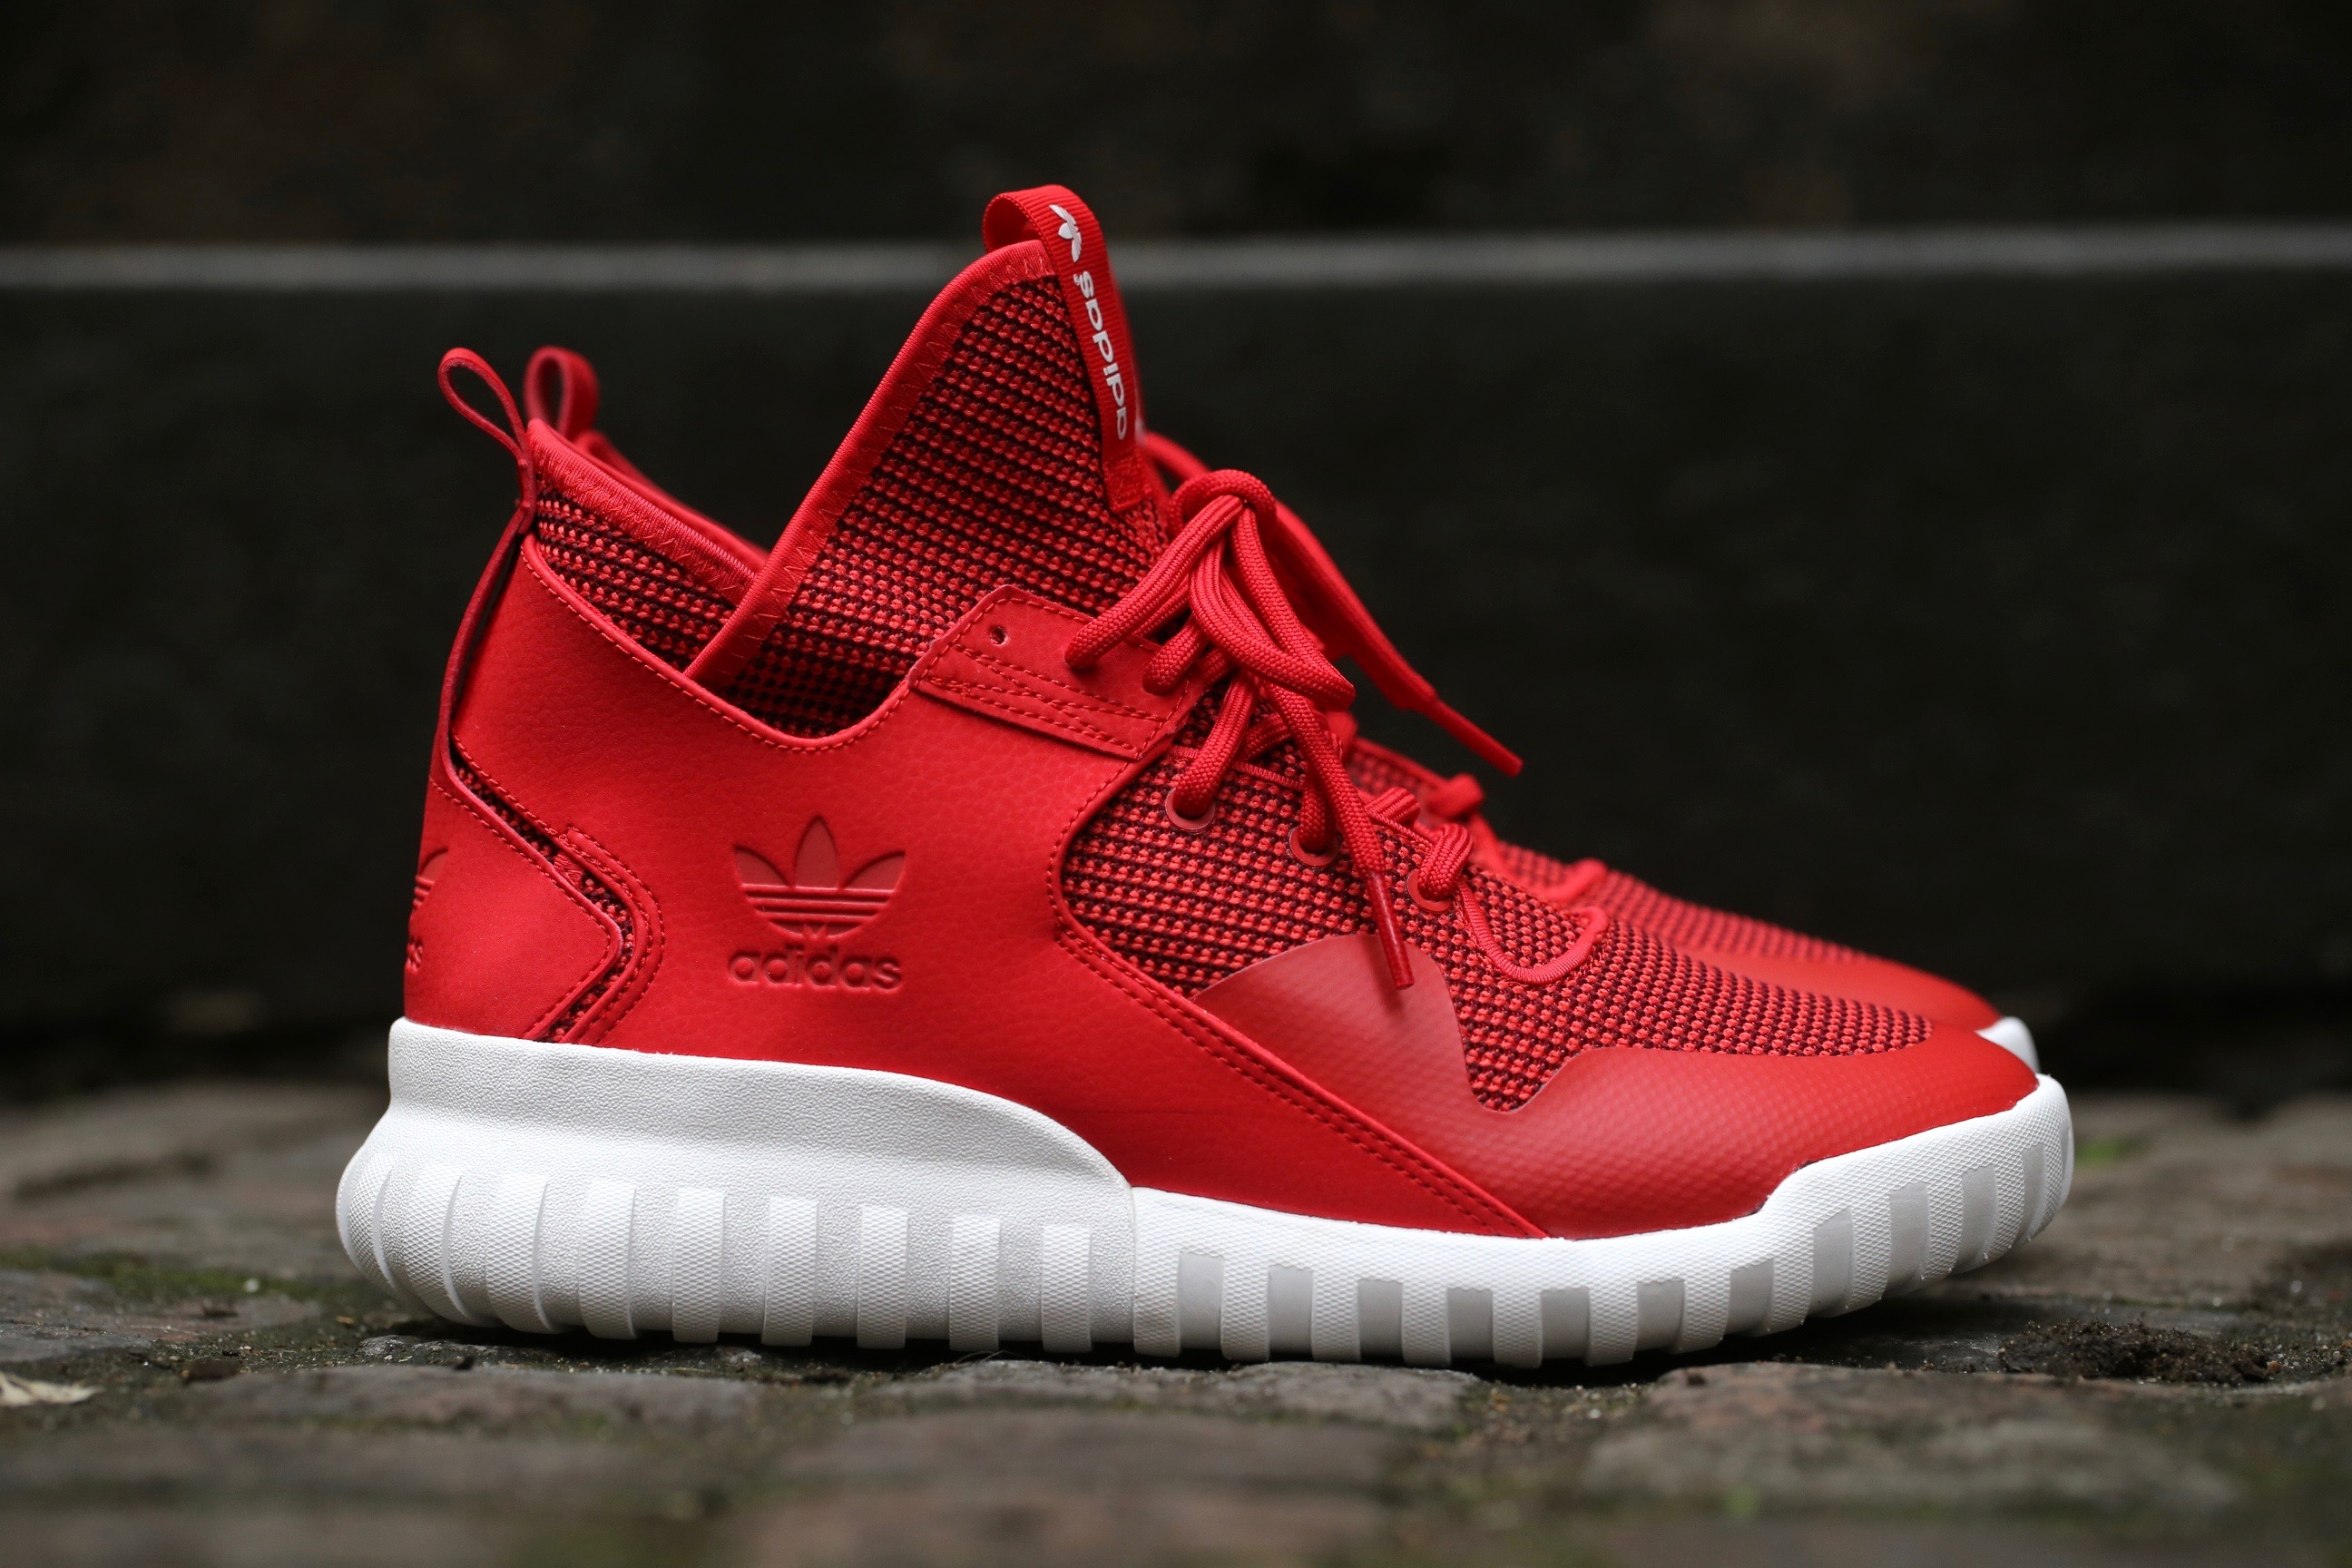 official photos 65344 d0640 adidas Originals Tubular X - Collegiate Red / White